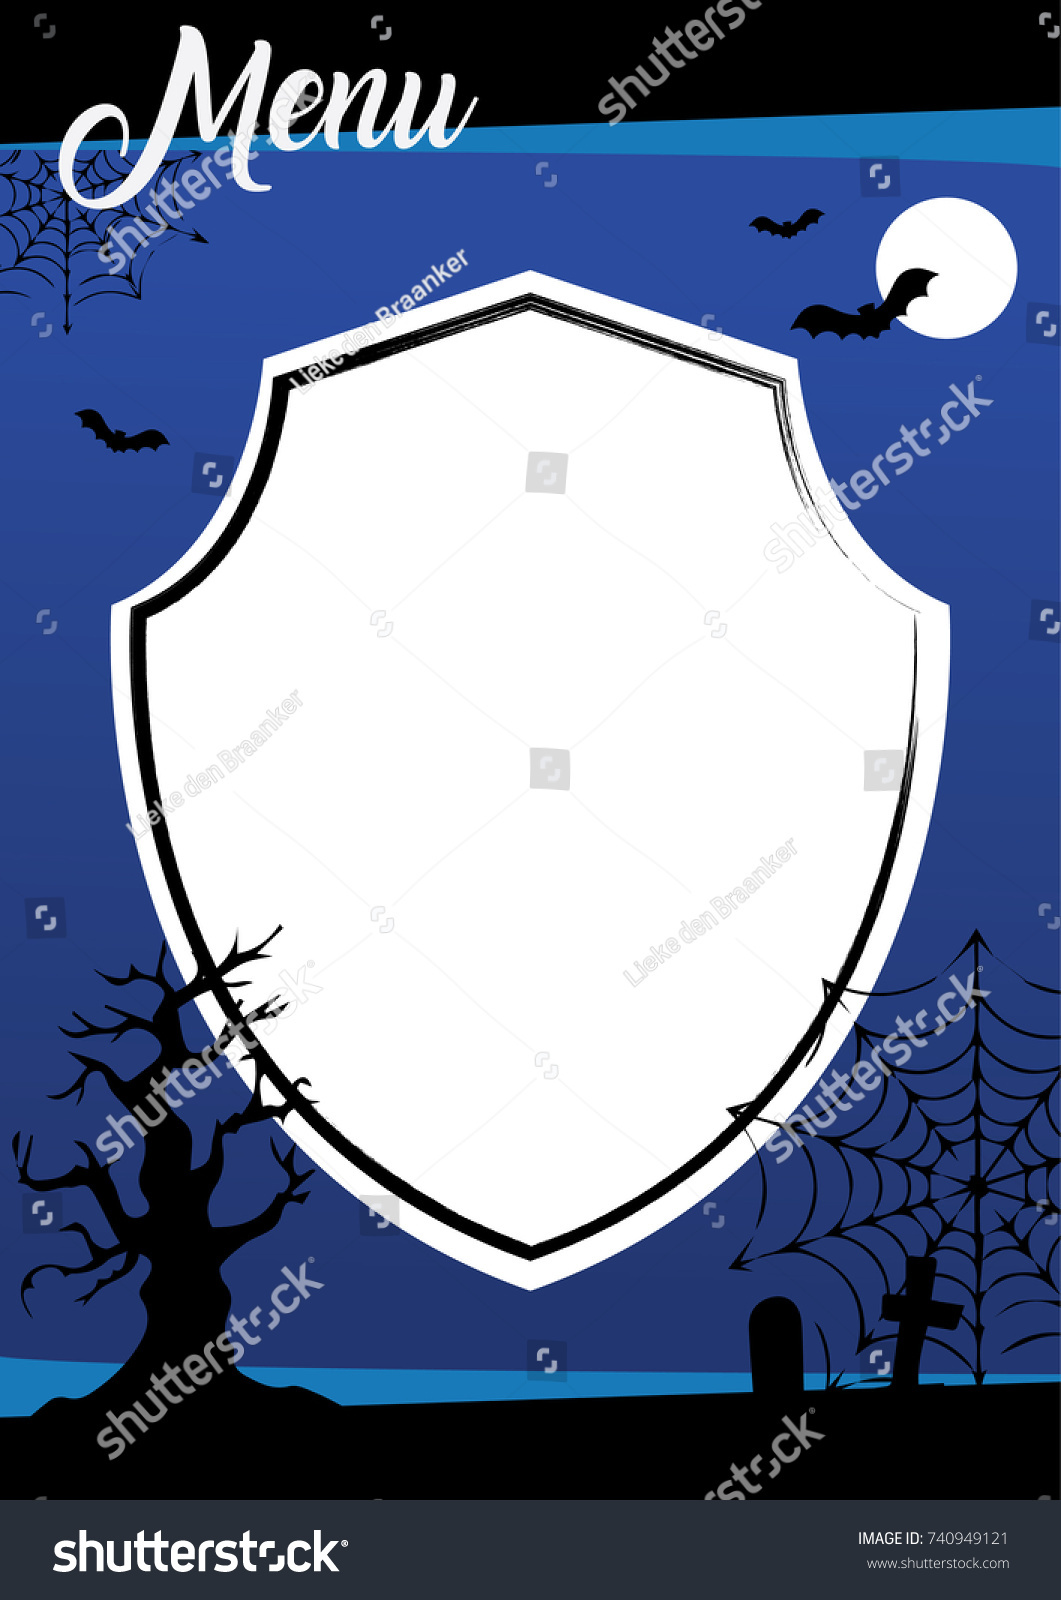 halloween menu template blue background decorations stock vector